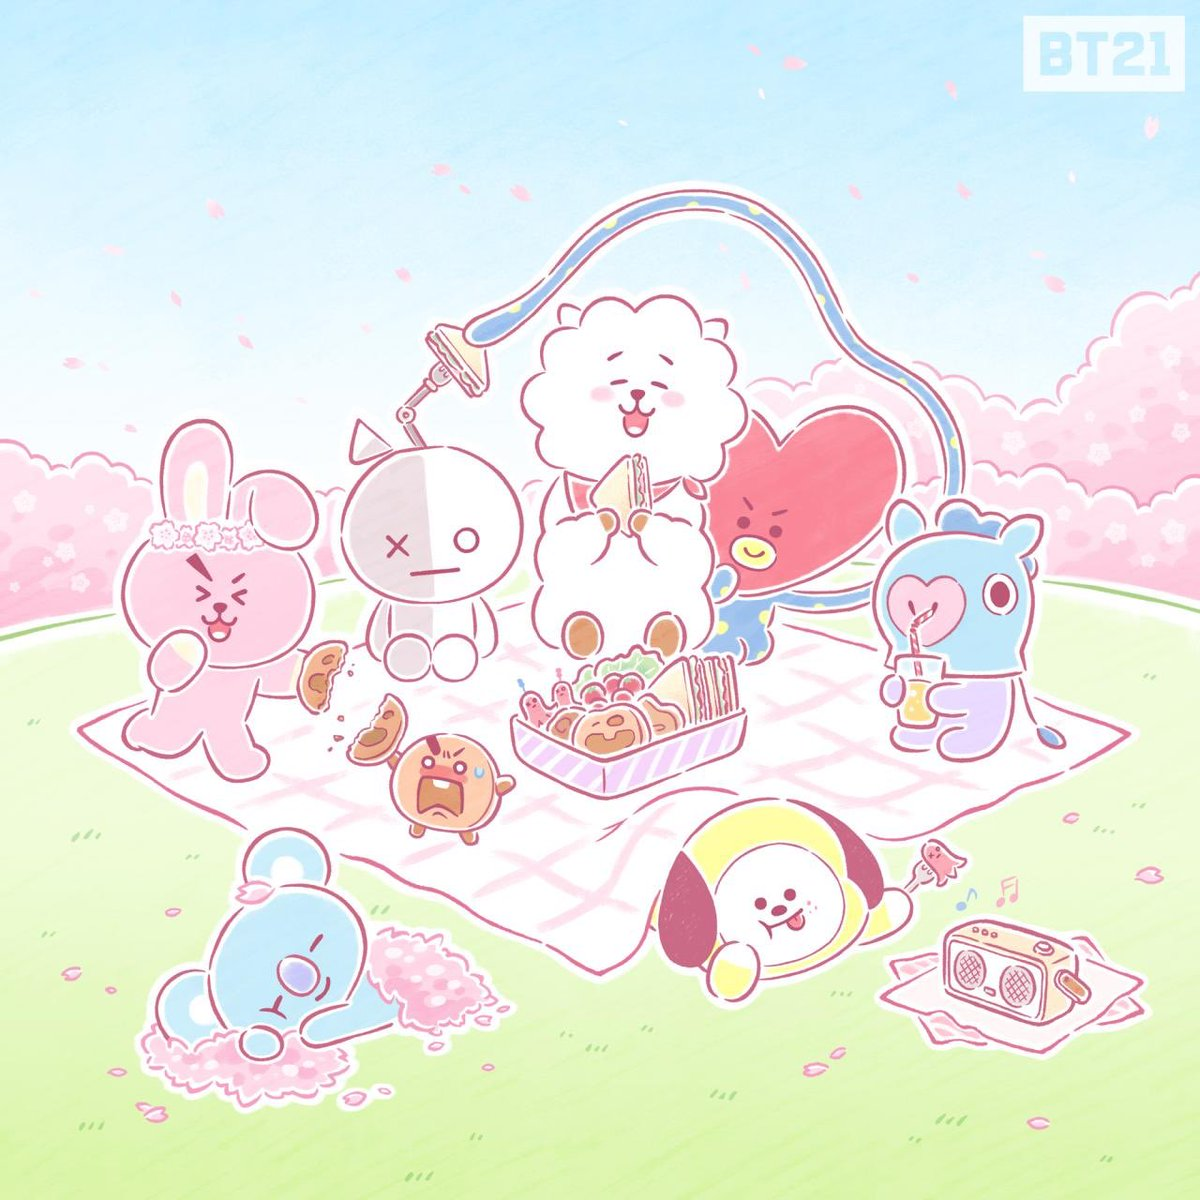 Bts Bt21 Computer Wallpaper Desktop